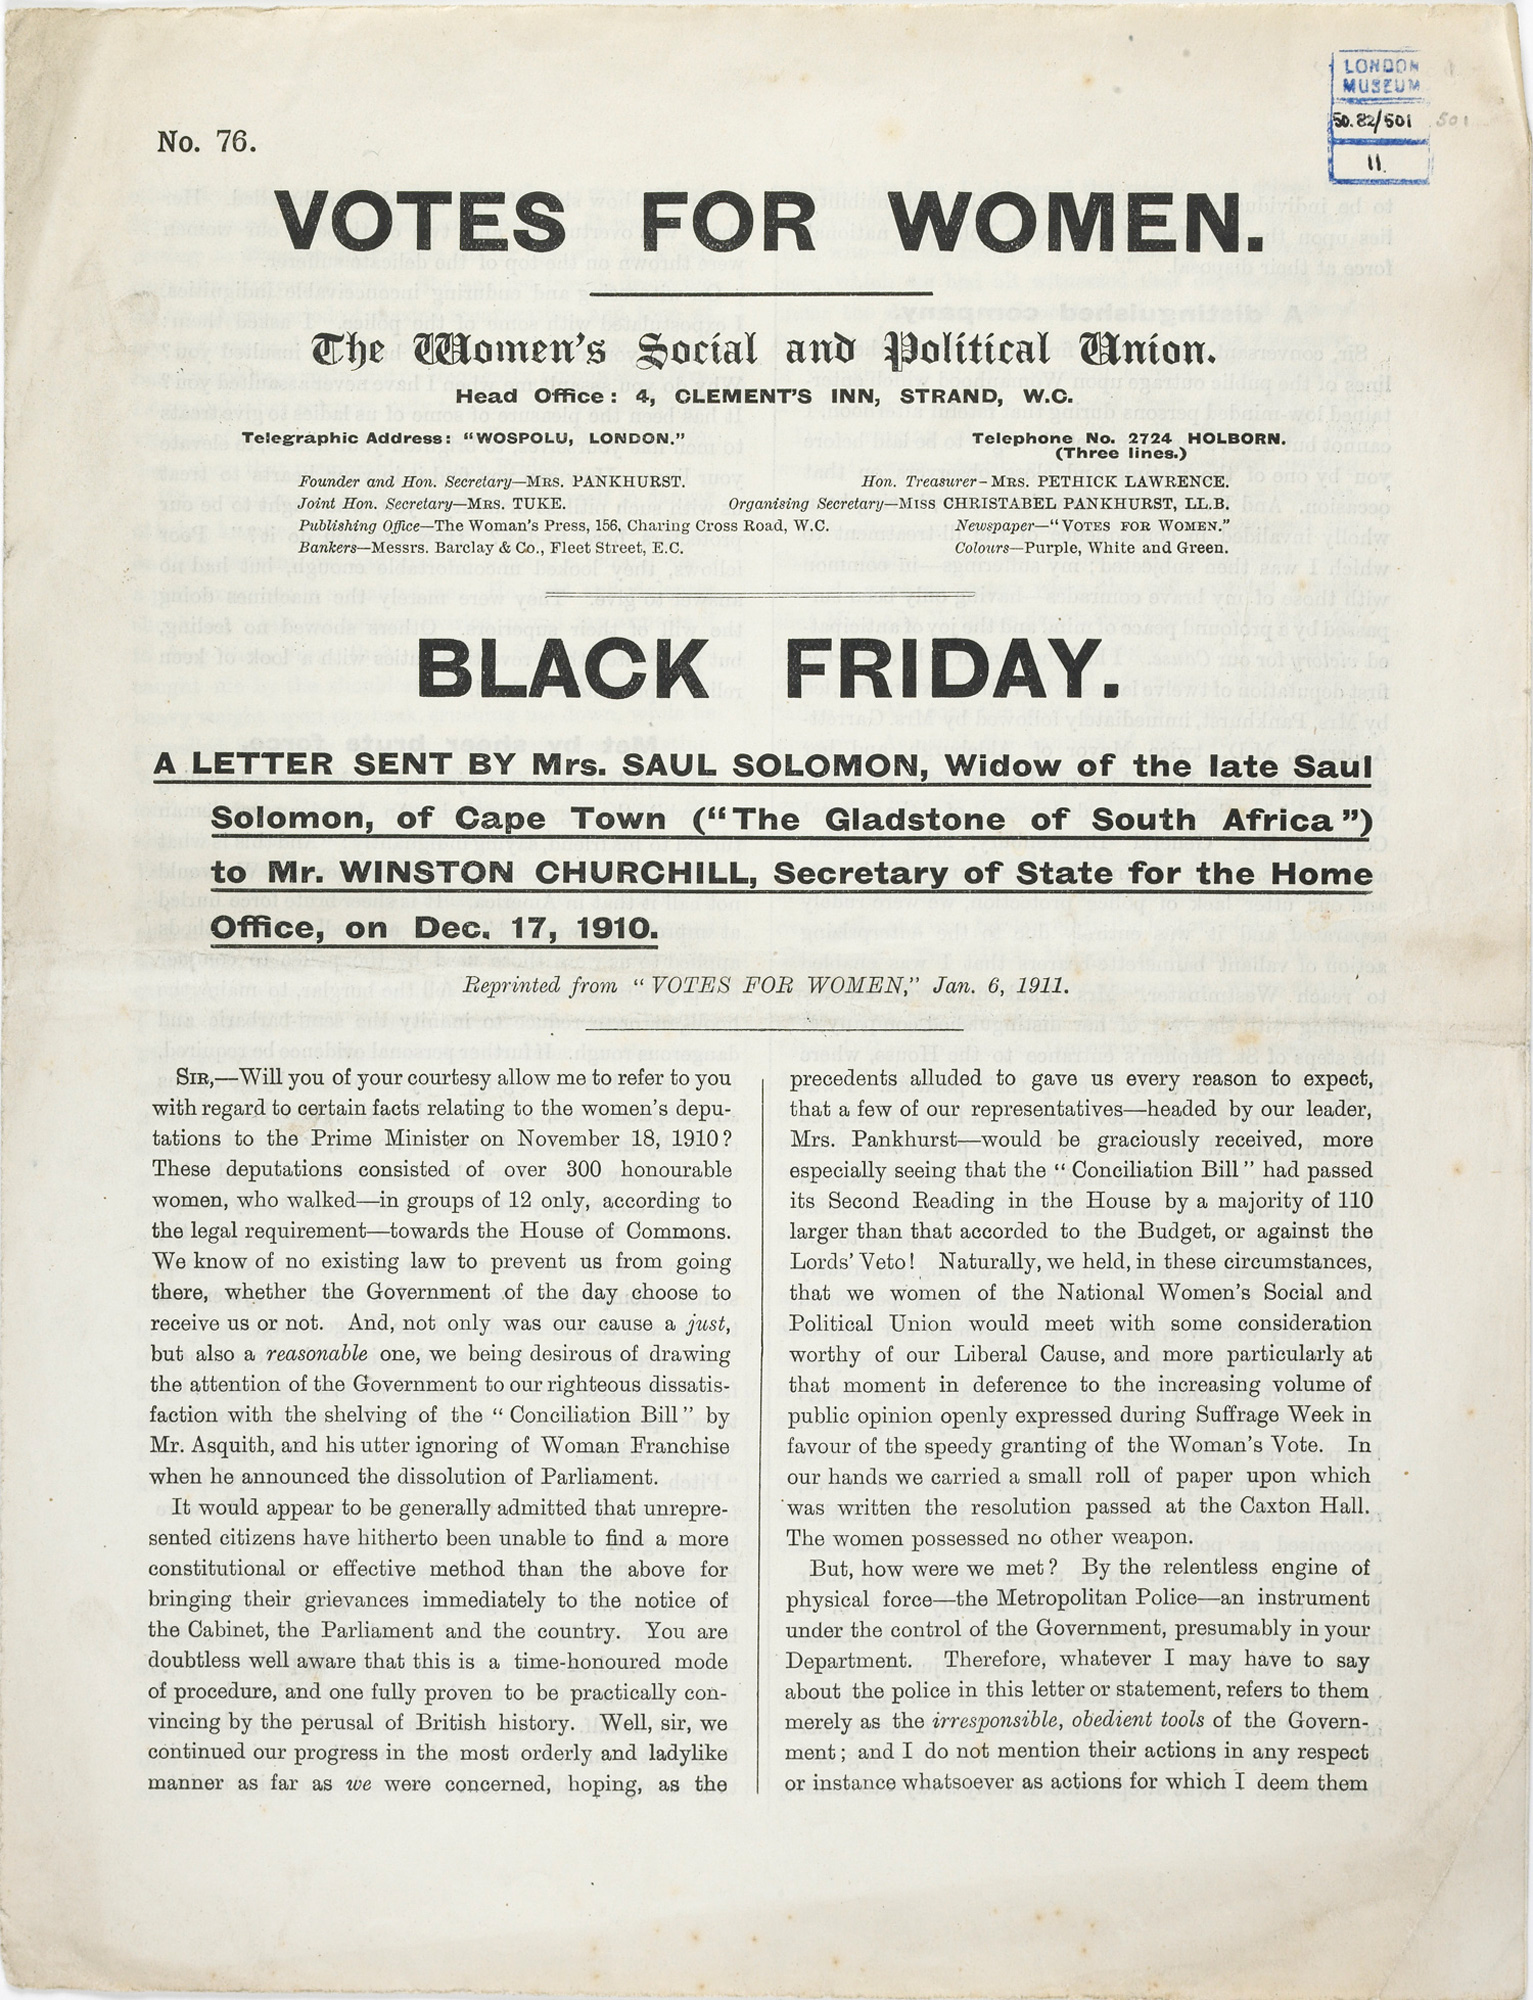 Black Friday pamphlet - The British Library 4d19545ad0116